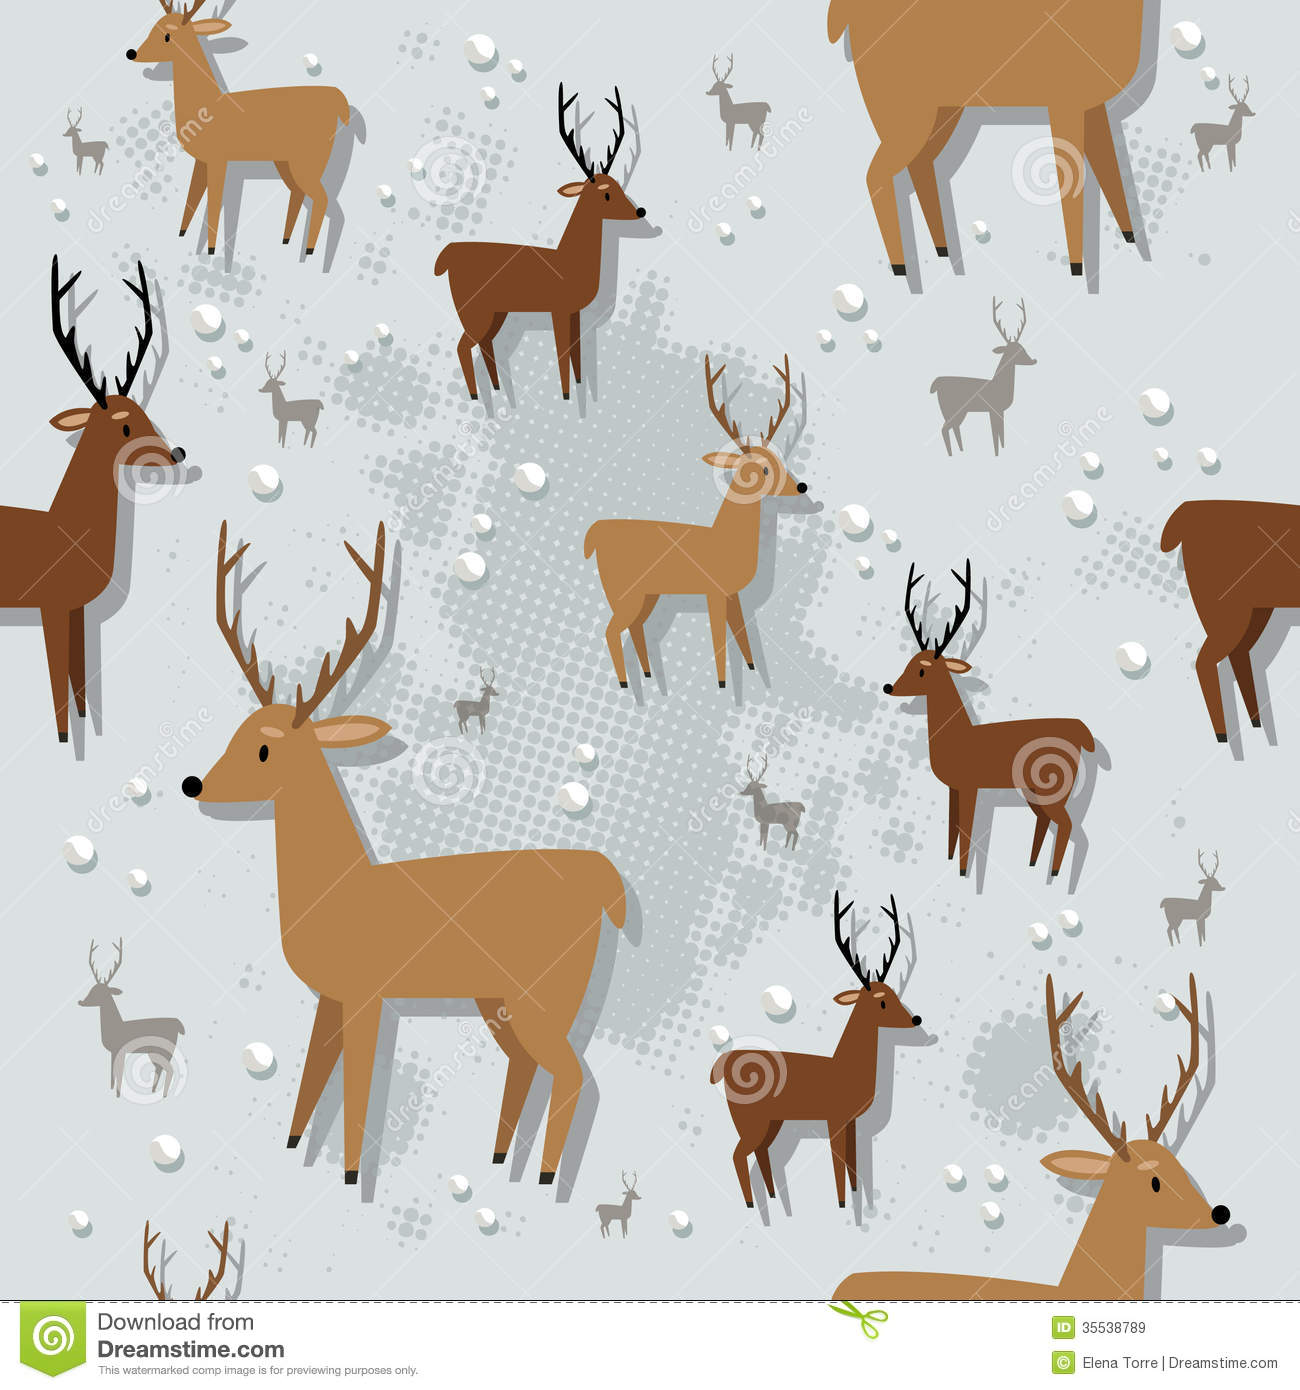 Wooden Reindeer Patterns Free Awesome Design Ideas